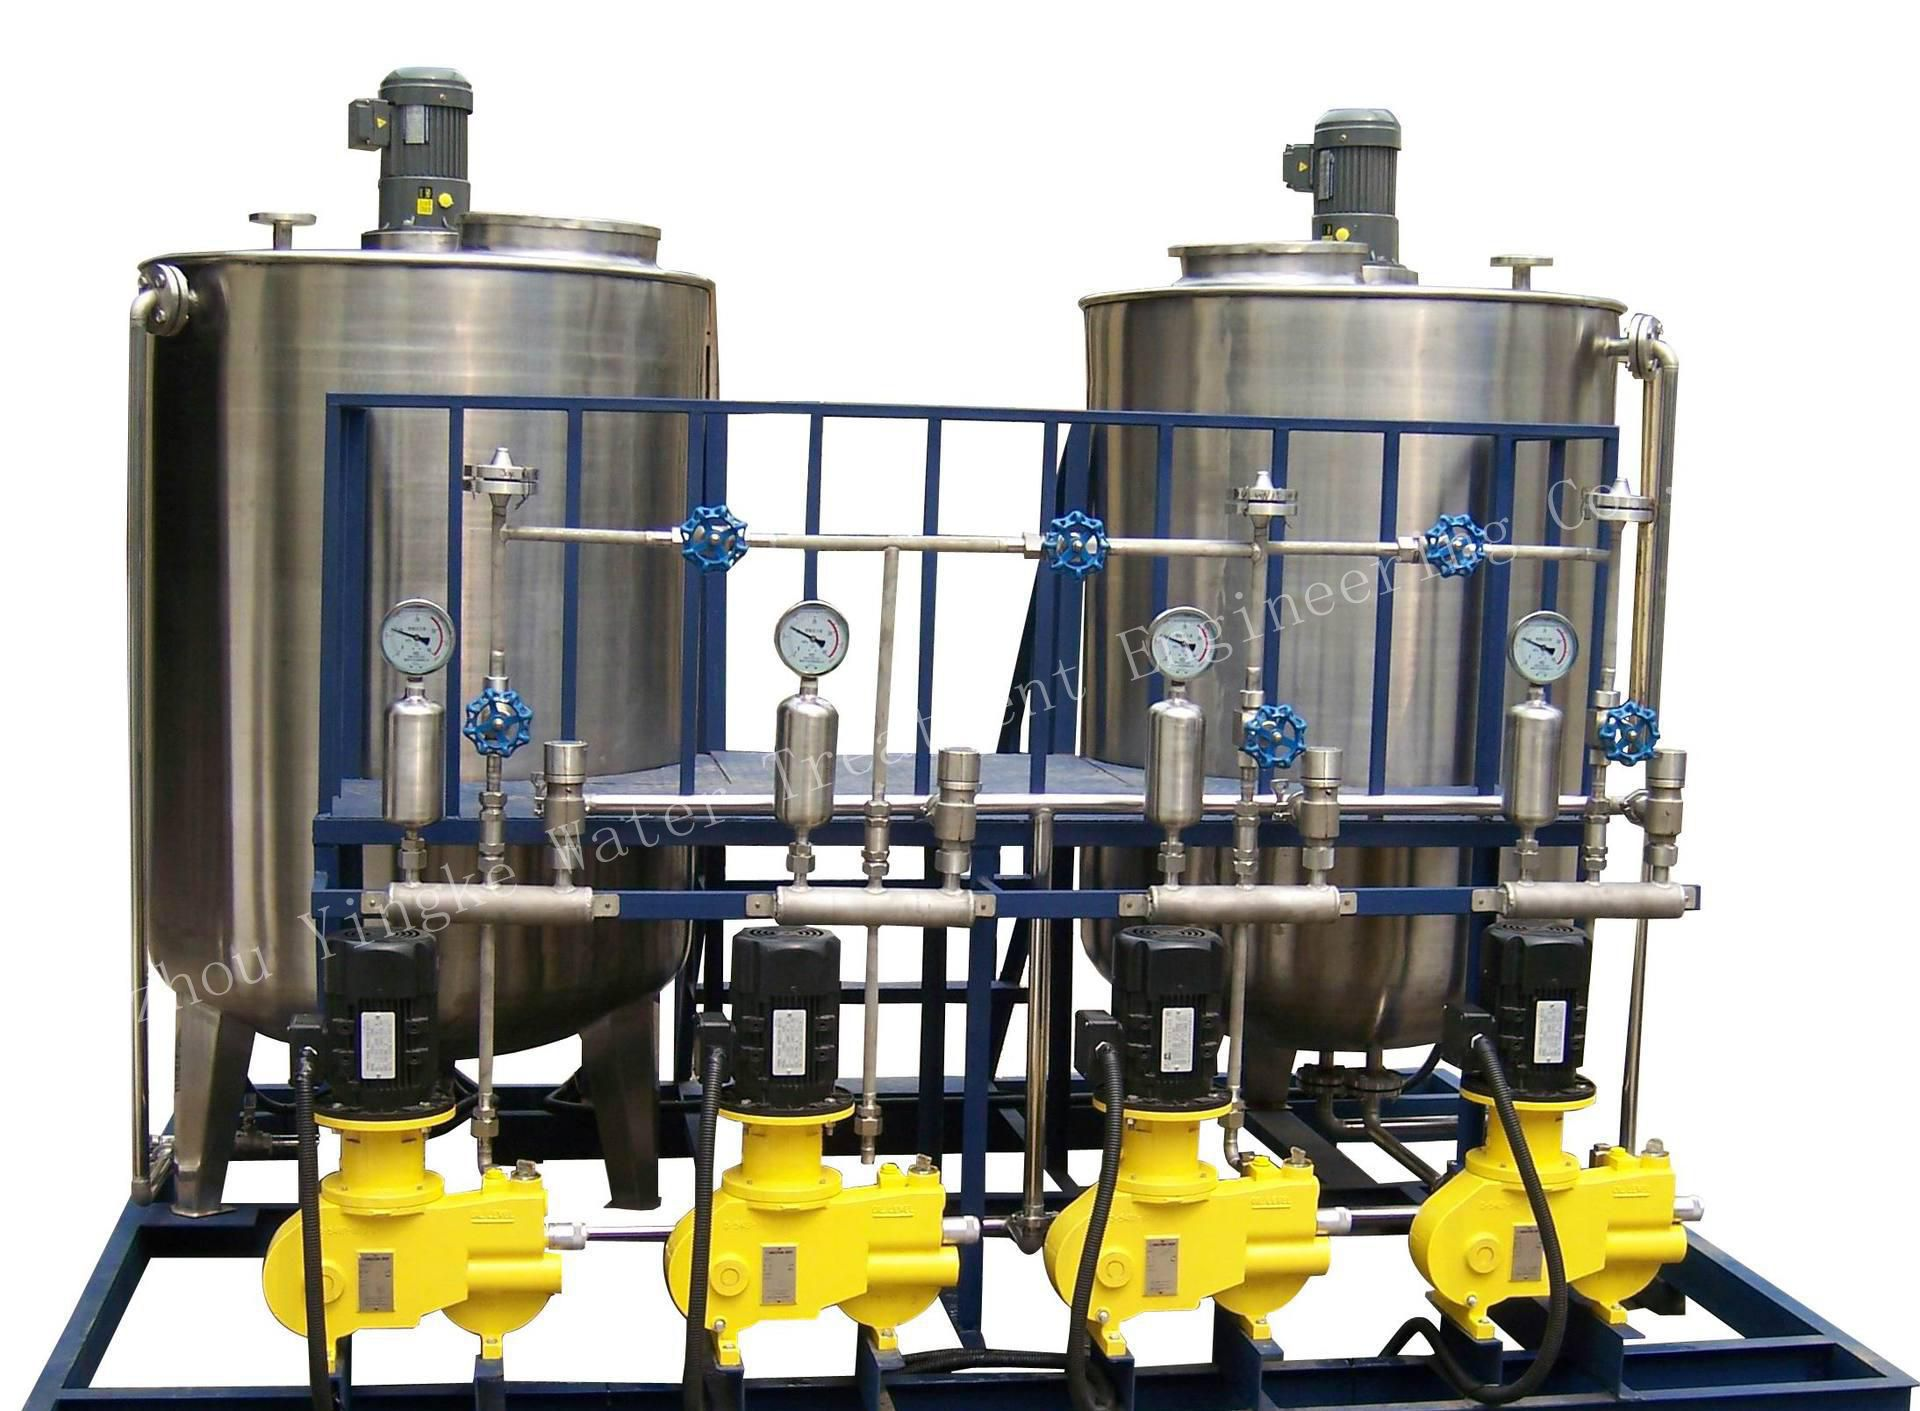 Fully automatic chemical dosing system for flocculation